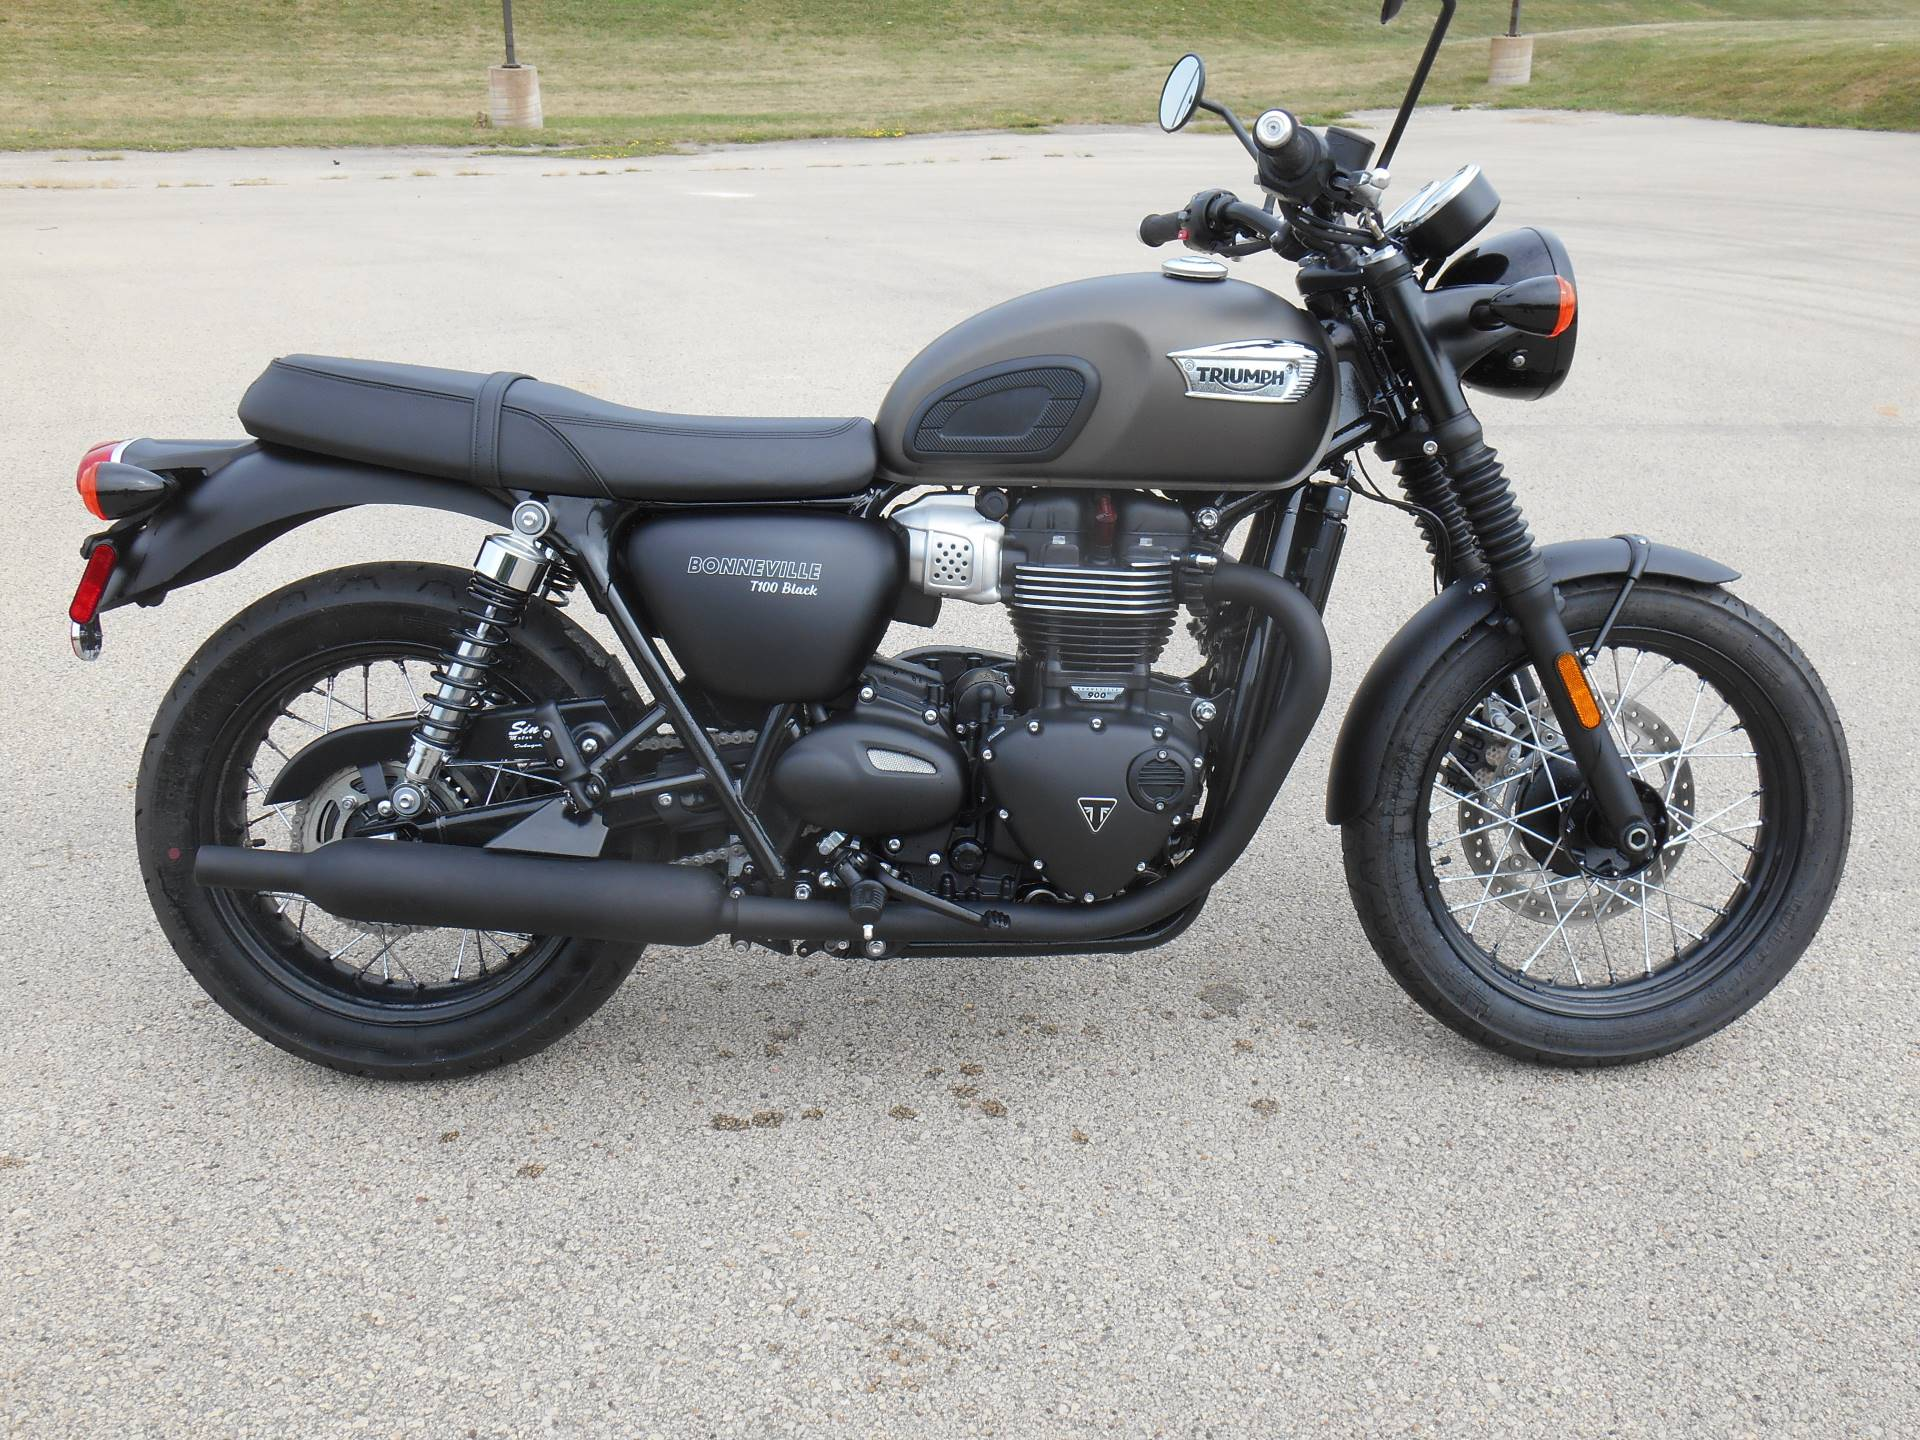 Used 2020 Triumph Bonneville T100 Black Motorcycles In Dubuque Ia Stock Number 981826